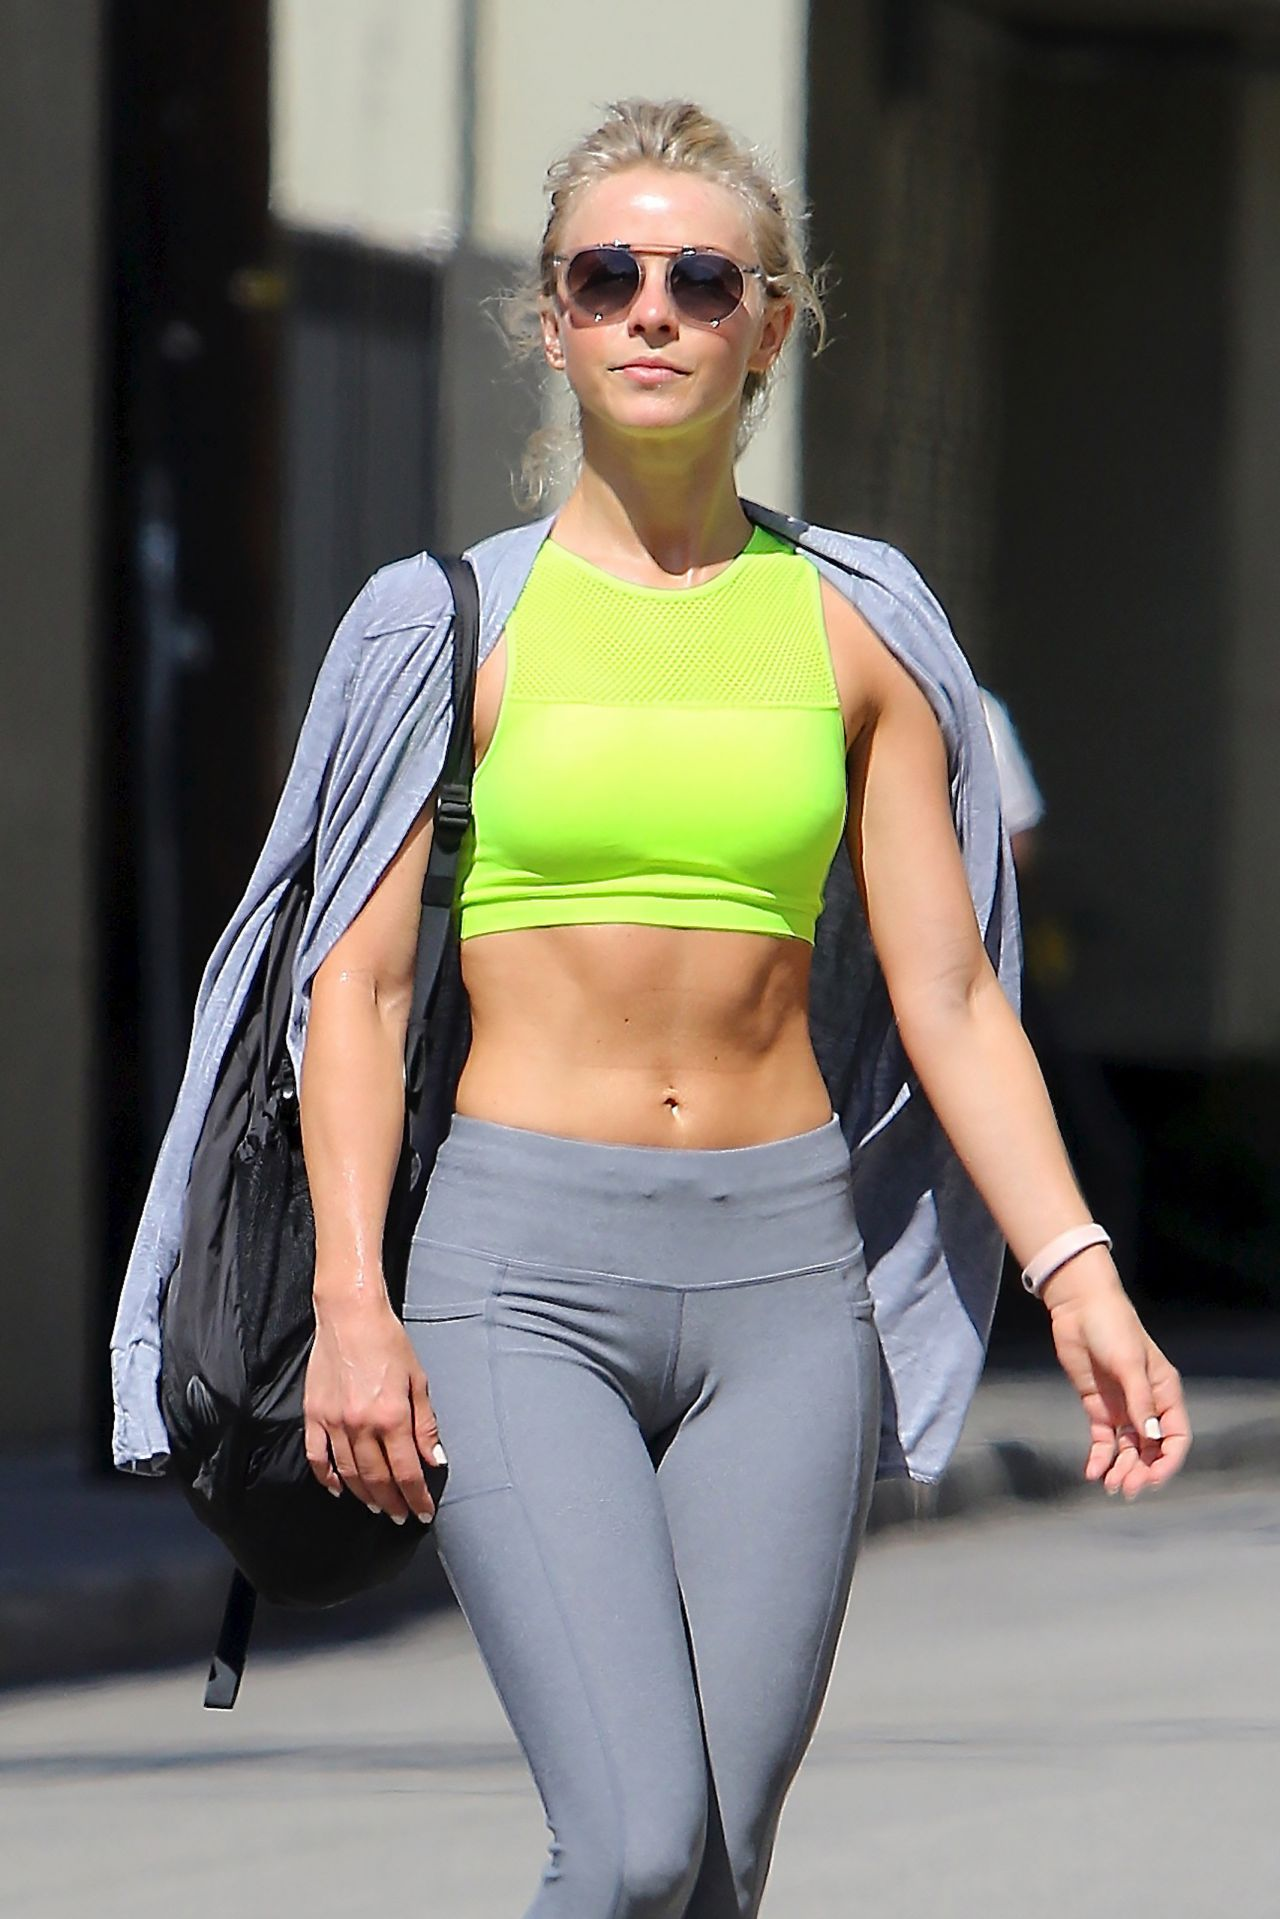 Julianne Hough Leaving A Gym In Beverly Hills 6 16 2016